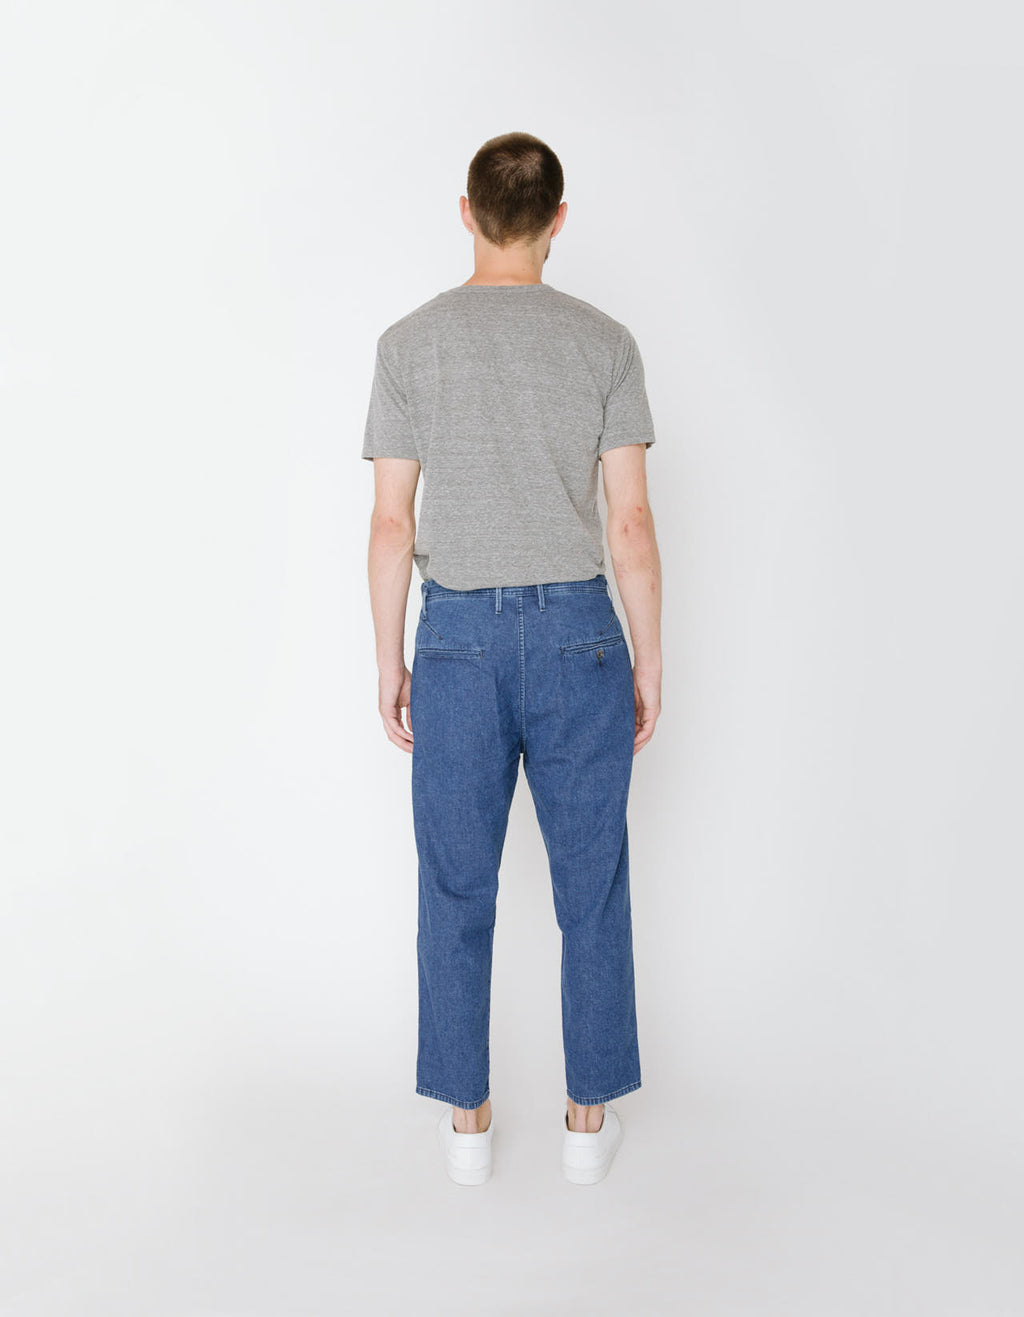 The Westline Jean in Cabana